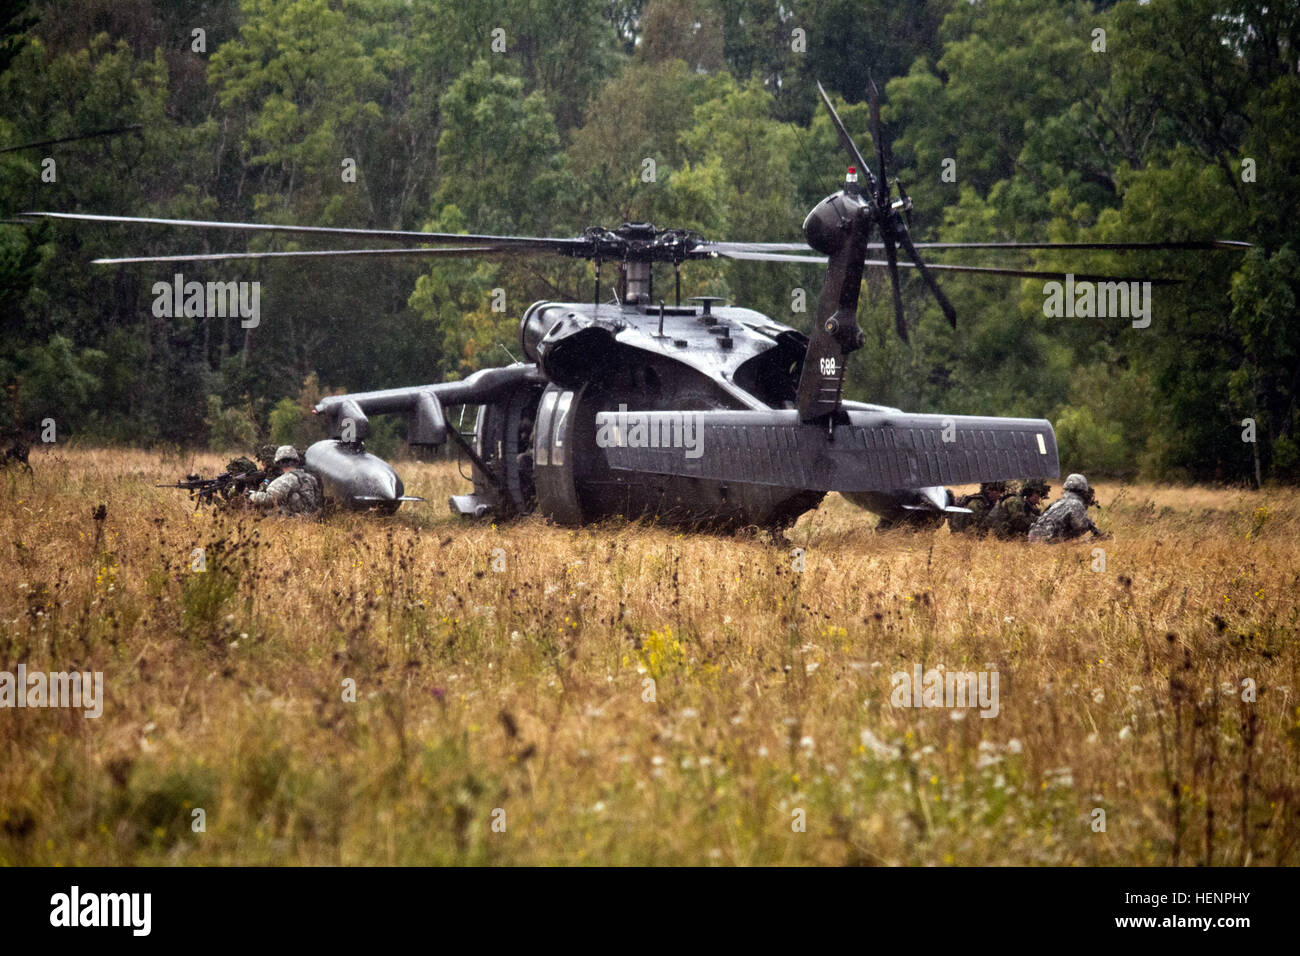 American paratroopers and Estonian soldiers exit a UH-60 Black Hawk Helicopter from the 12th Combat Aviation Brigade during an air assault training mission held Aug 22-24 in Paldiski, Estonia. The three-day exercise featured troops from Company B, 2nd Battalion, 503rd Infantry Regiment, 173rd Airborne Brigade and the Estonian Defense Forces' Single Scouts Infantry Battalion executing day and night assaults. The training is part of Operation Atlantic Resolve, an exercise dedicated to demonstrating commitment to NATO obligations and maintaining interoperability with allied forces. Heroes on helo Stock Photo